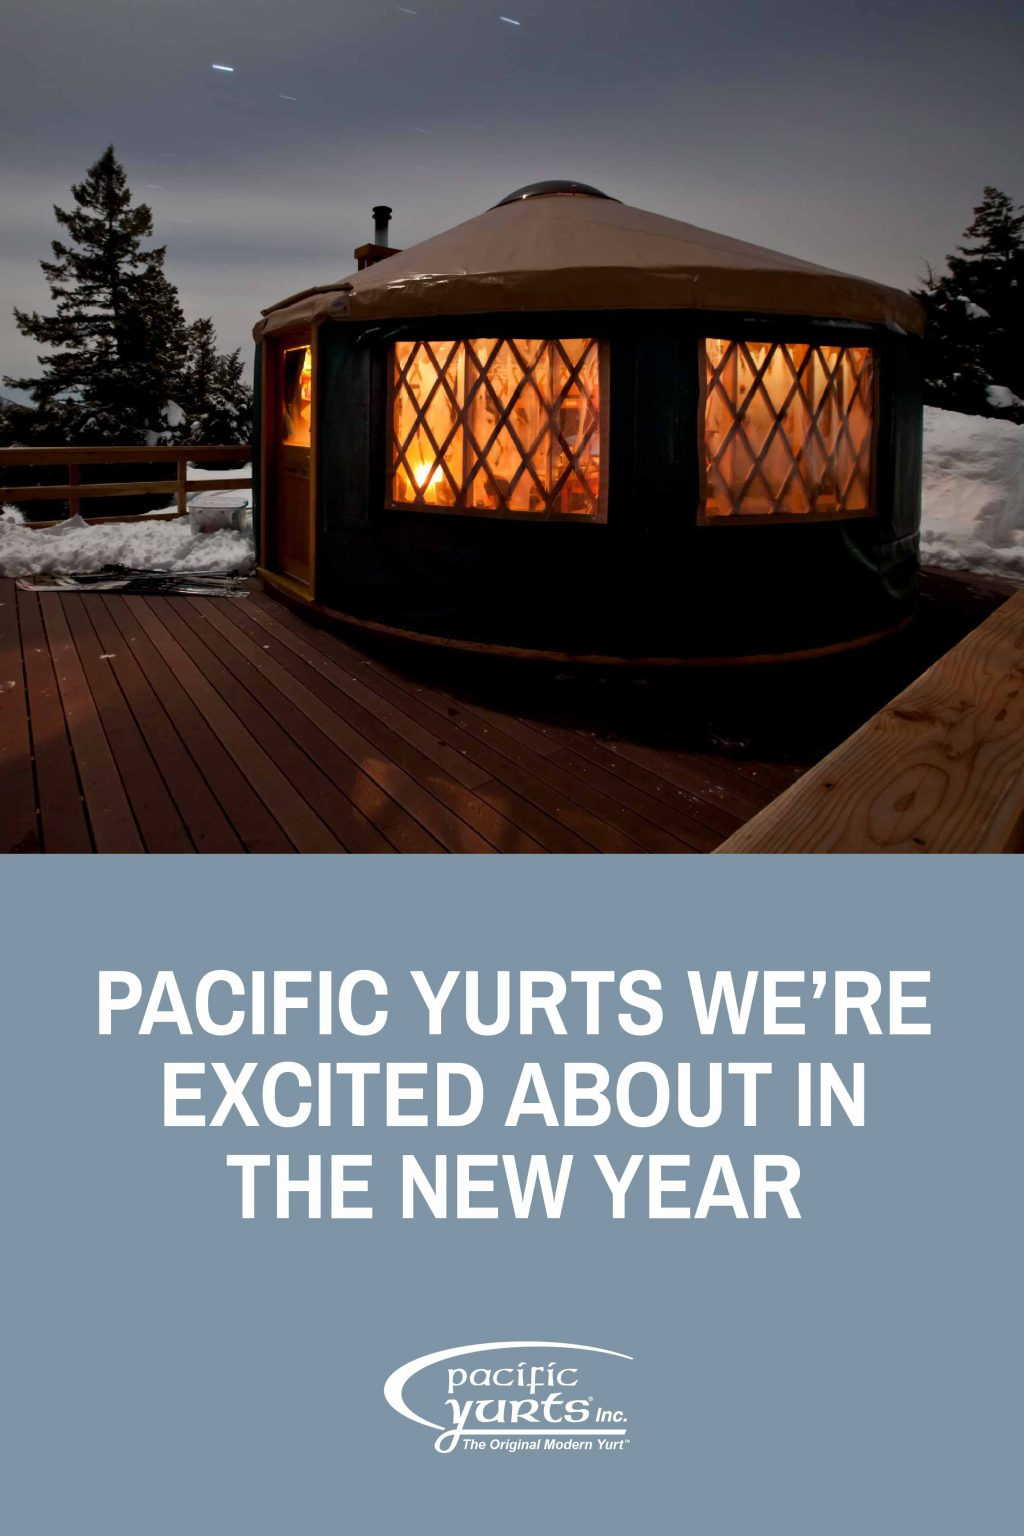 Pacific-Yurts-we-are-excited-about-in-the-new-year